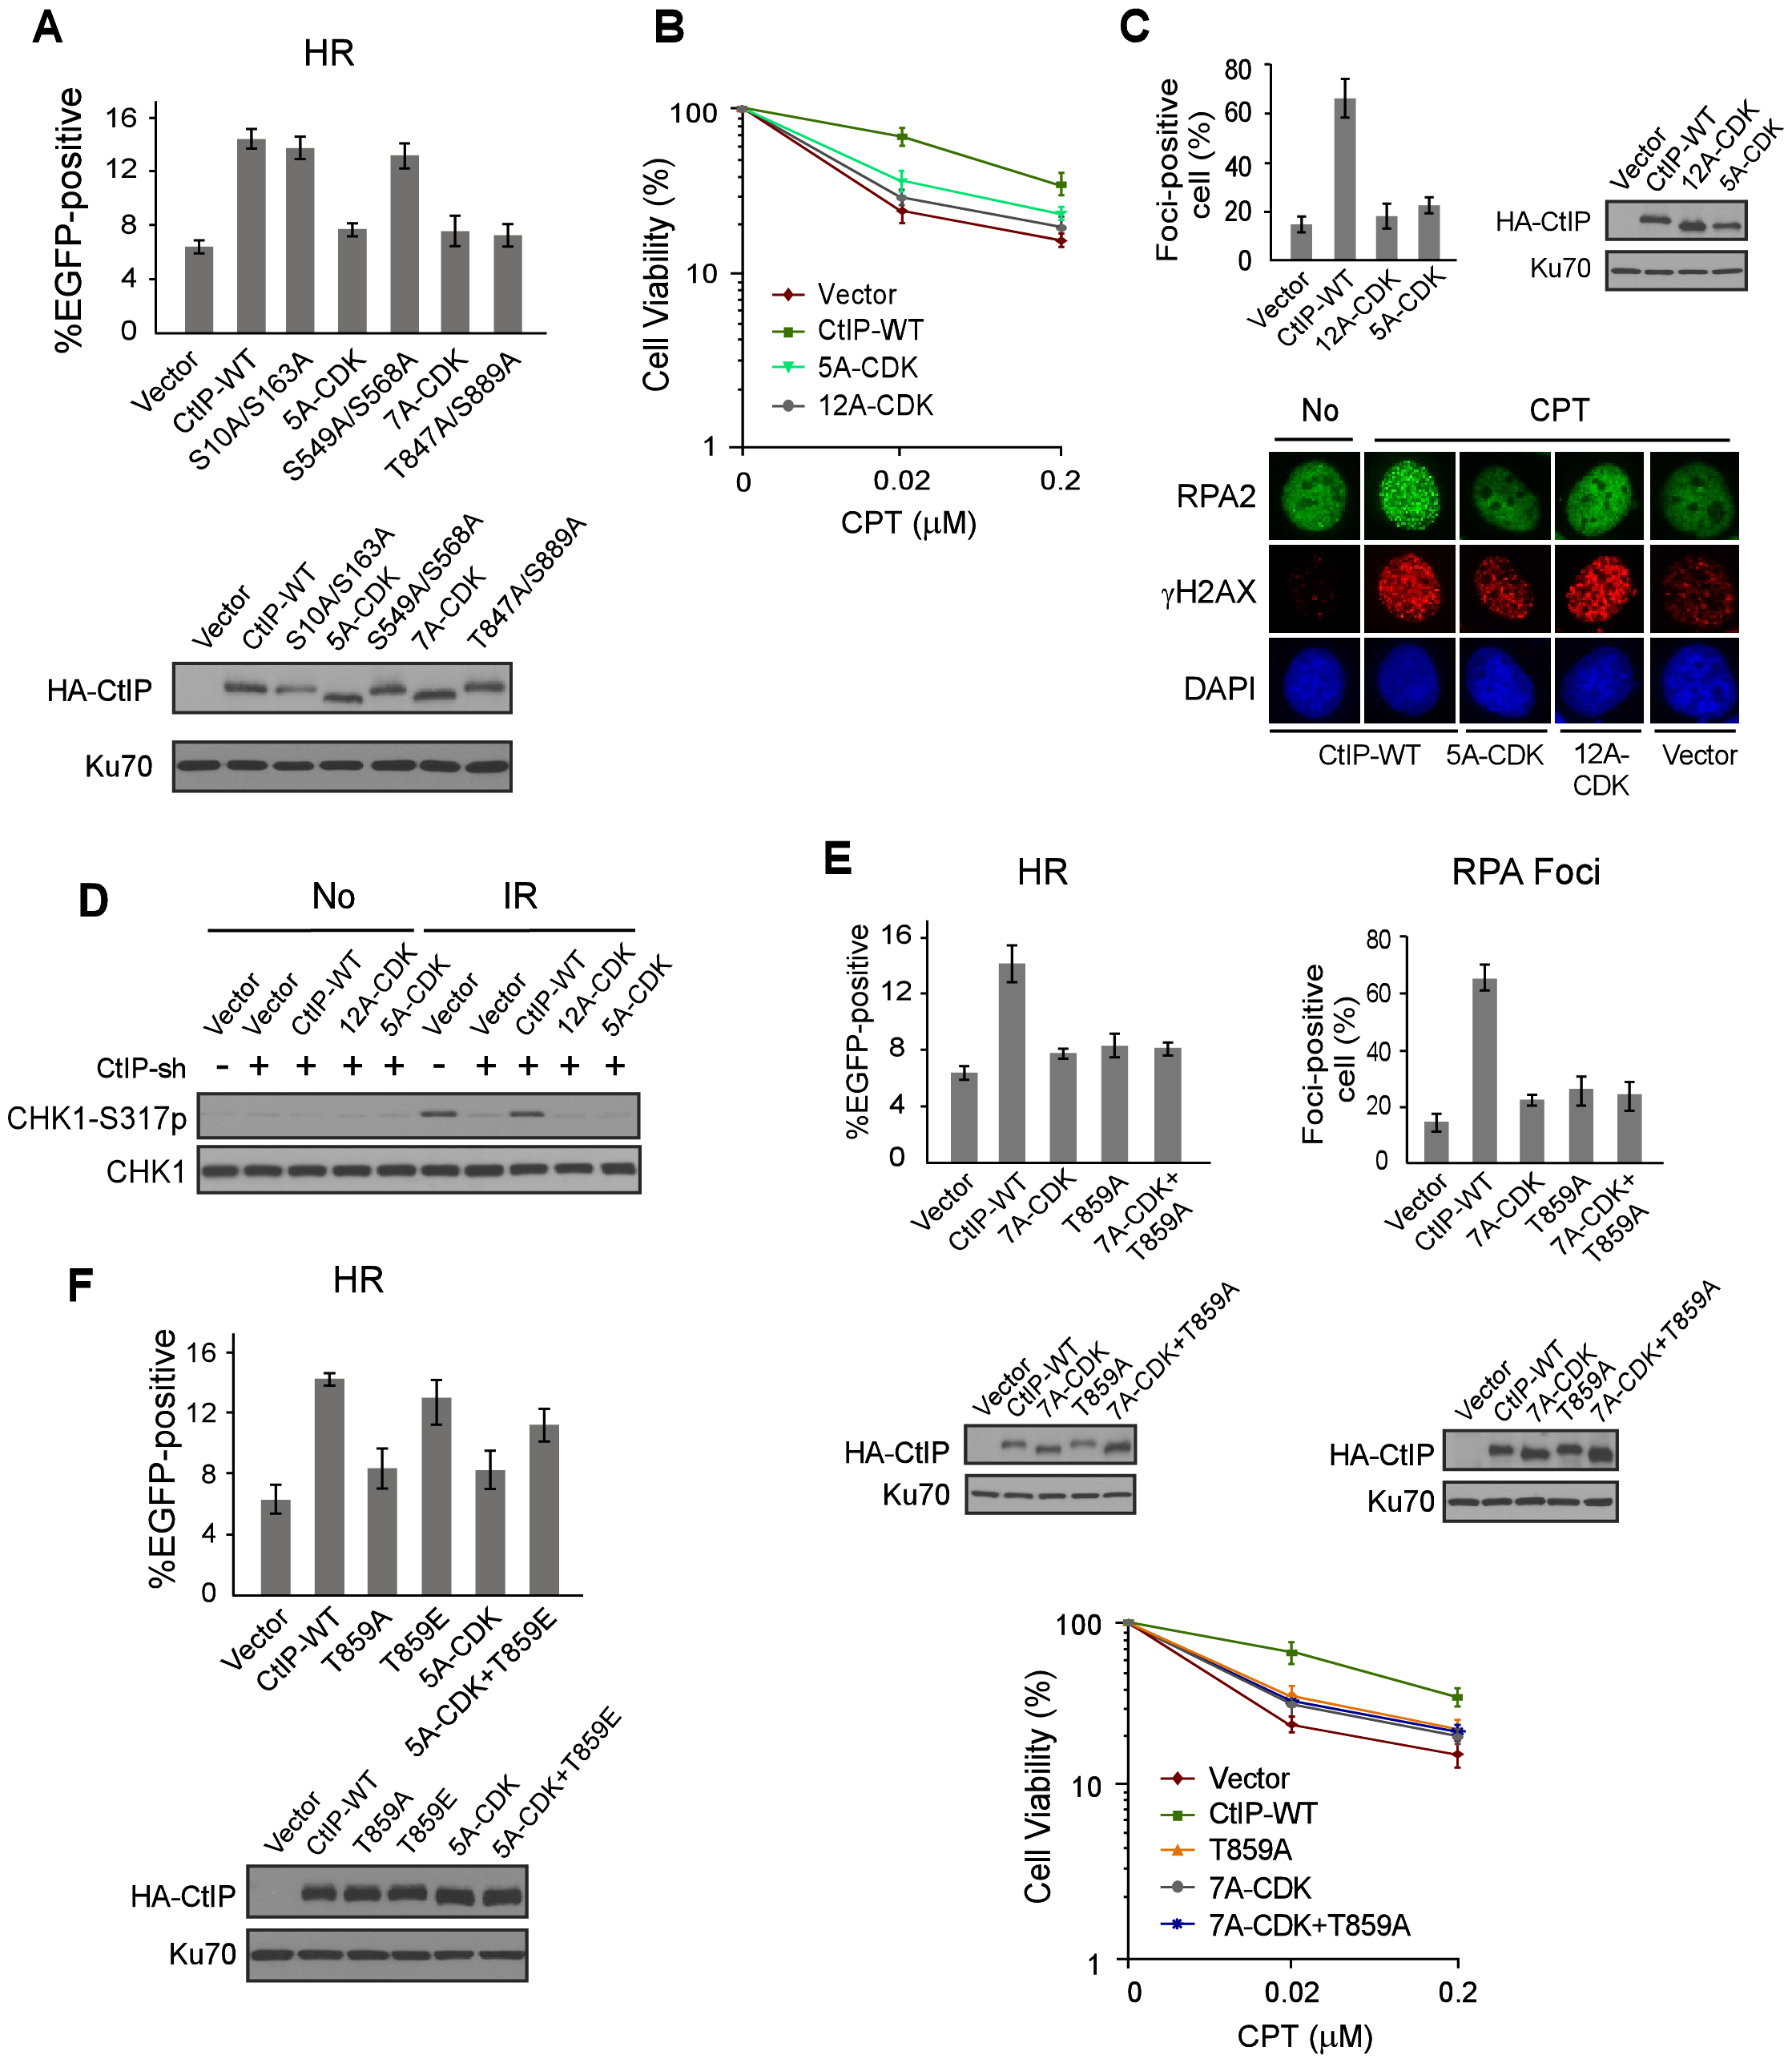 ATM-mediated phosphorylation of CtIP is important for end resection in a CDK-dependent manner.